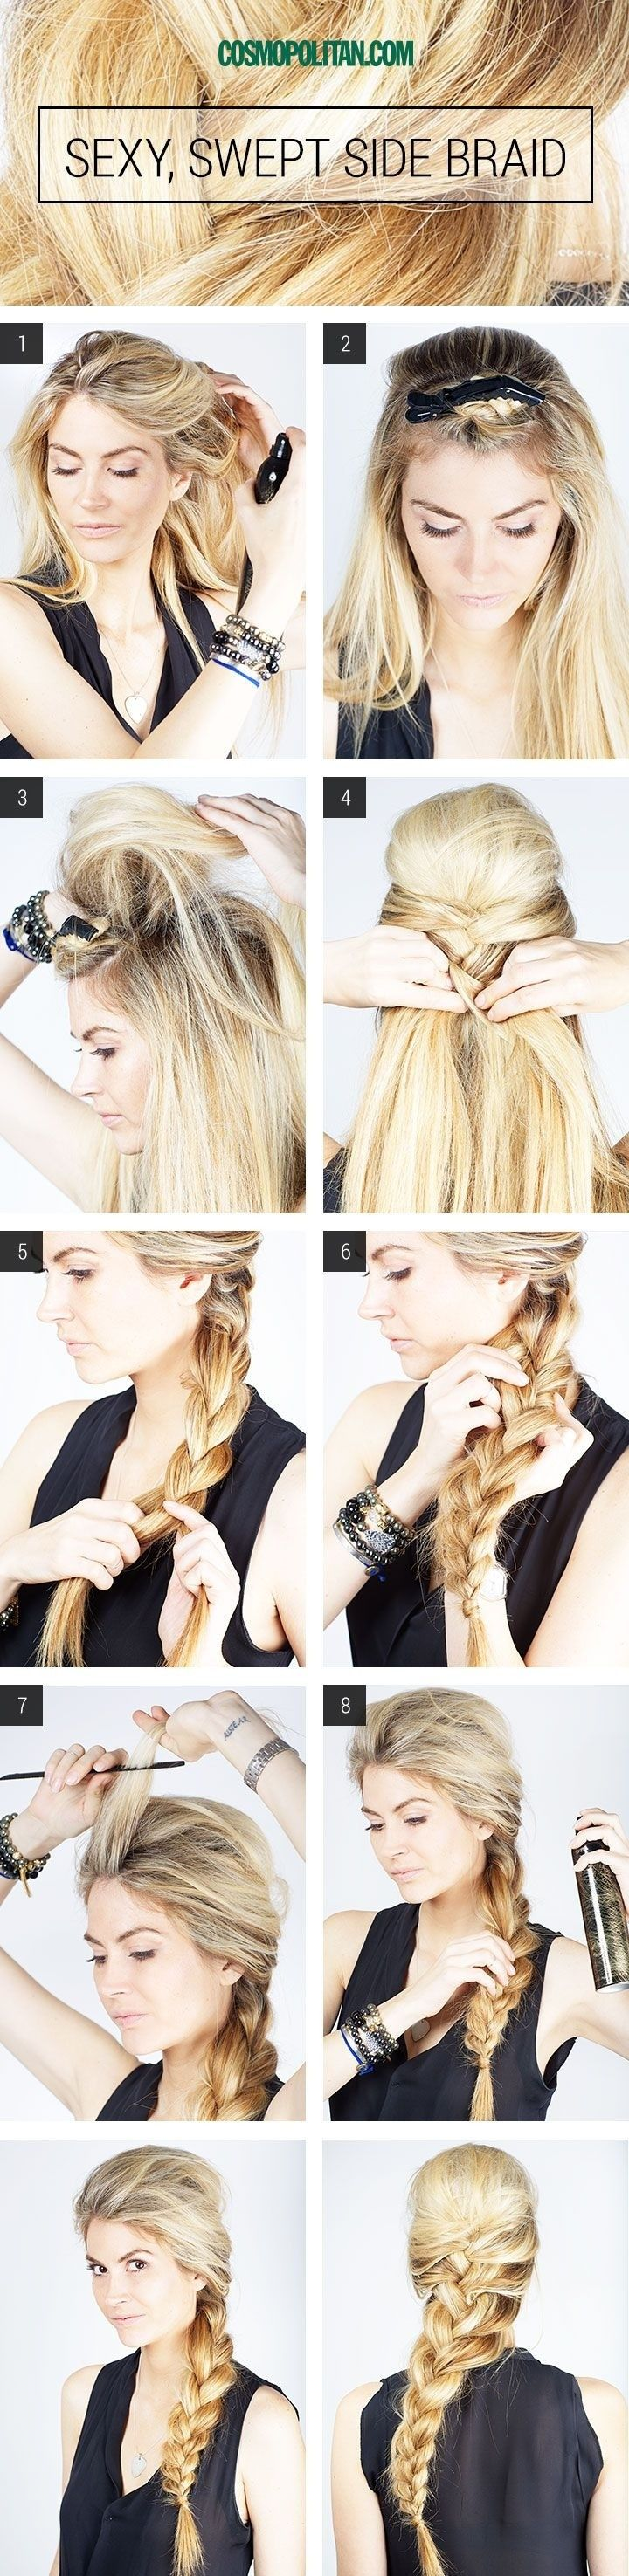 Sexy swept side braid